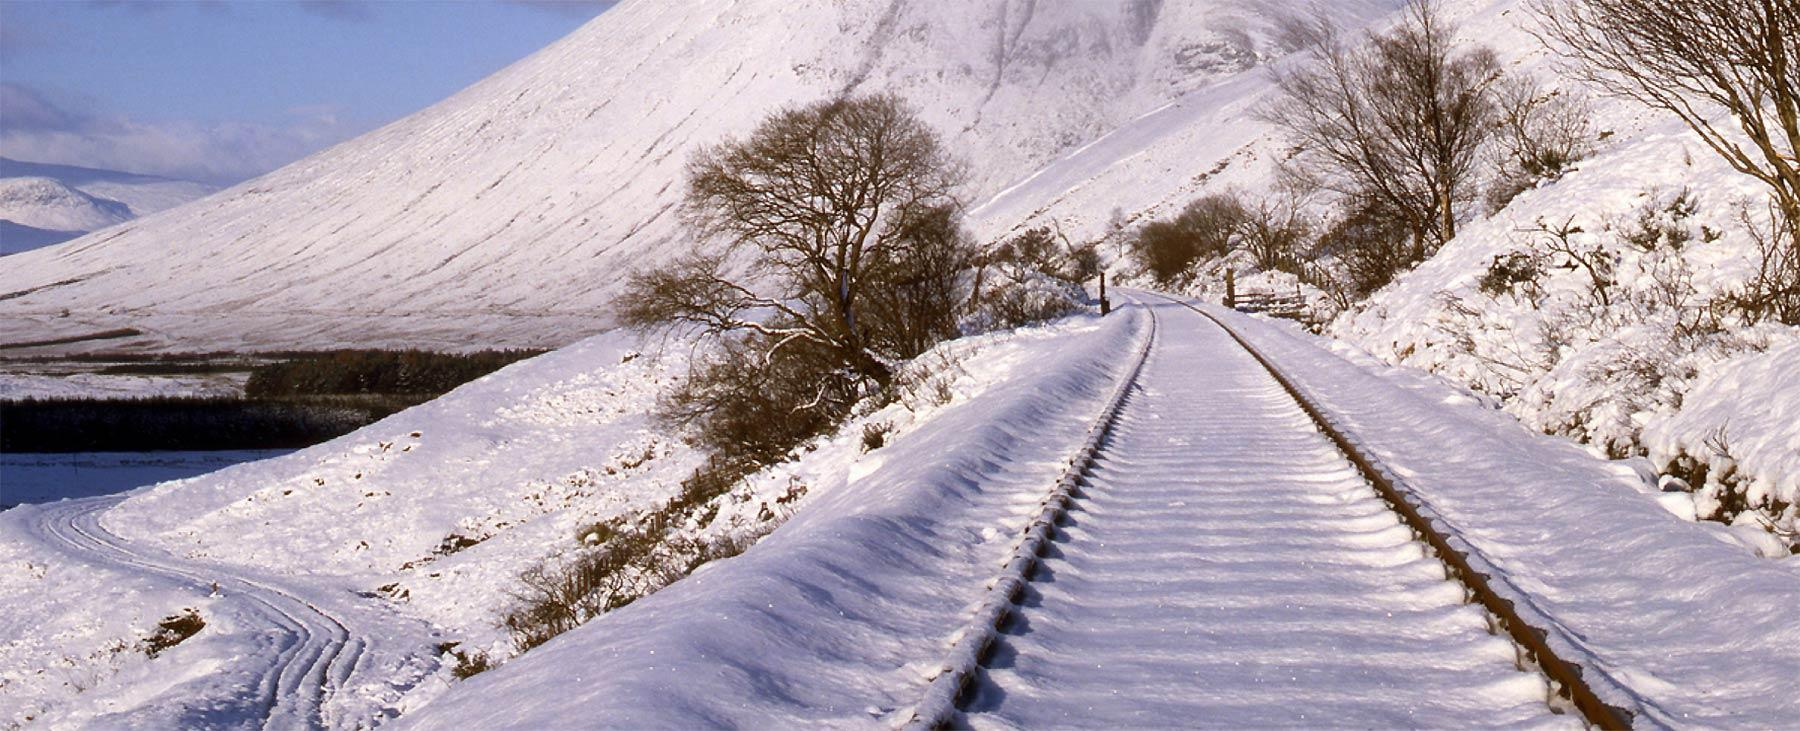 Railway line in the snow